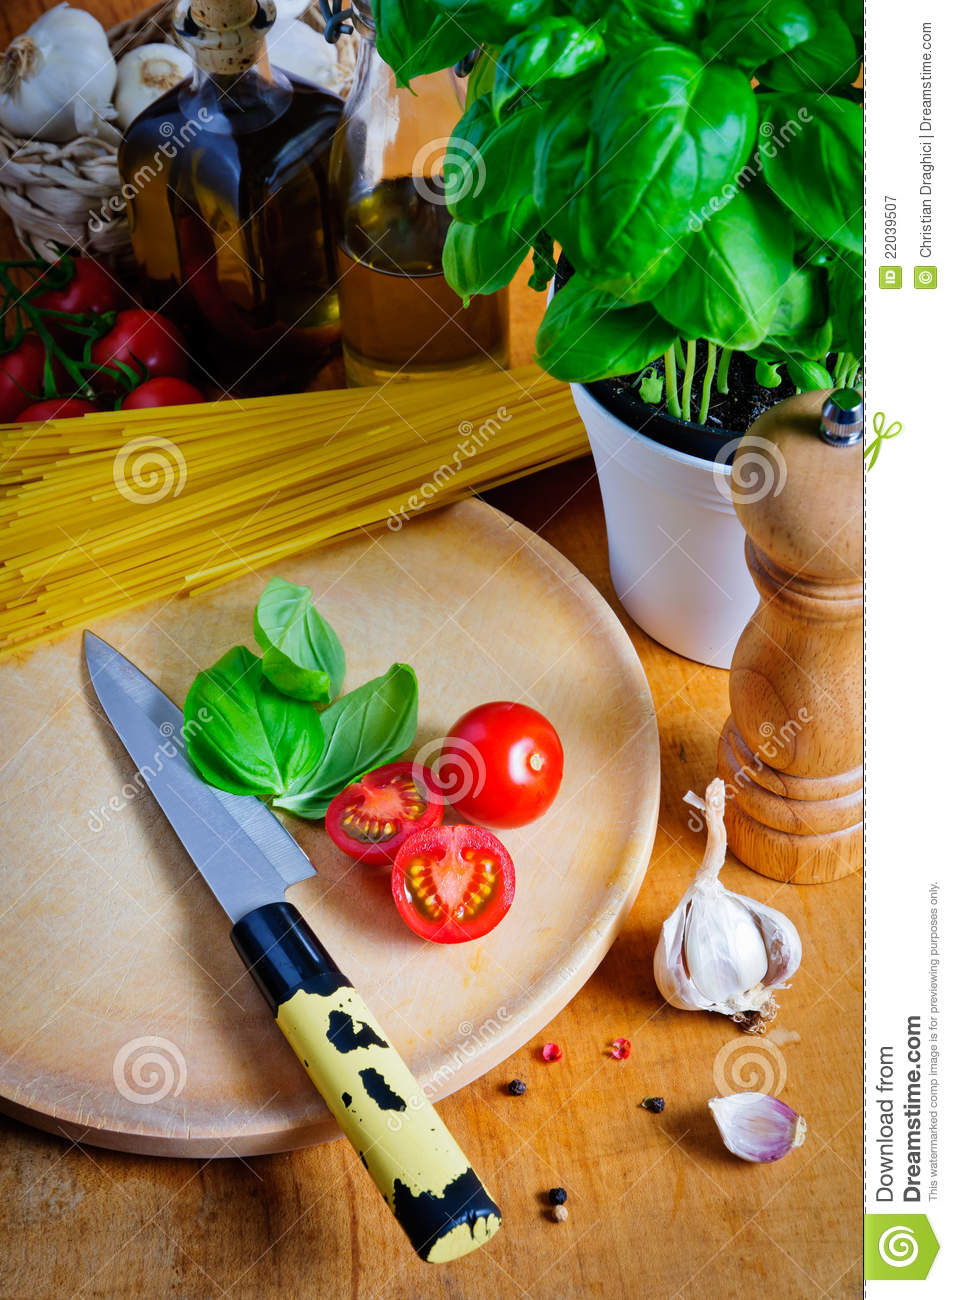 Ingredientes para cocinar el alimento italiano fotograf a for Ingredientes para cocinar